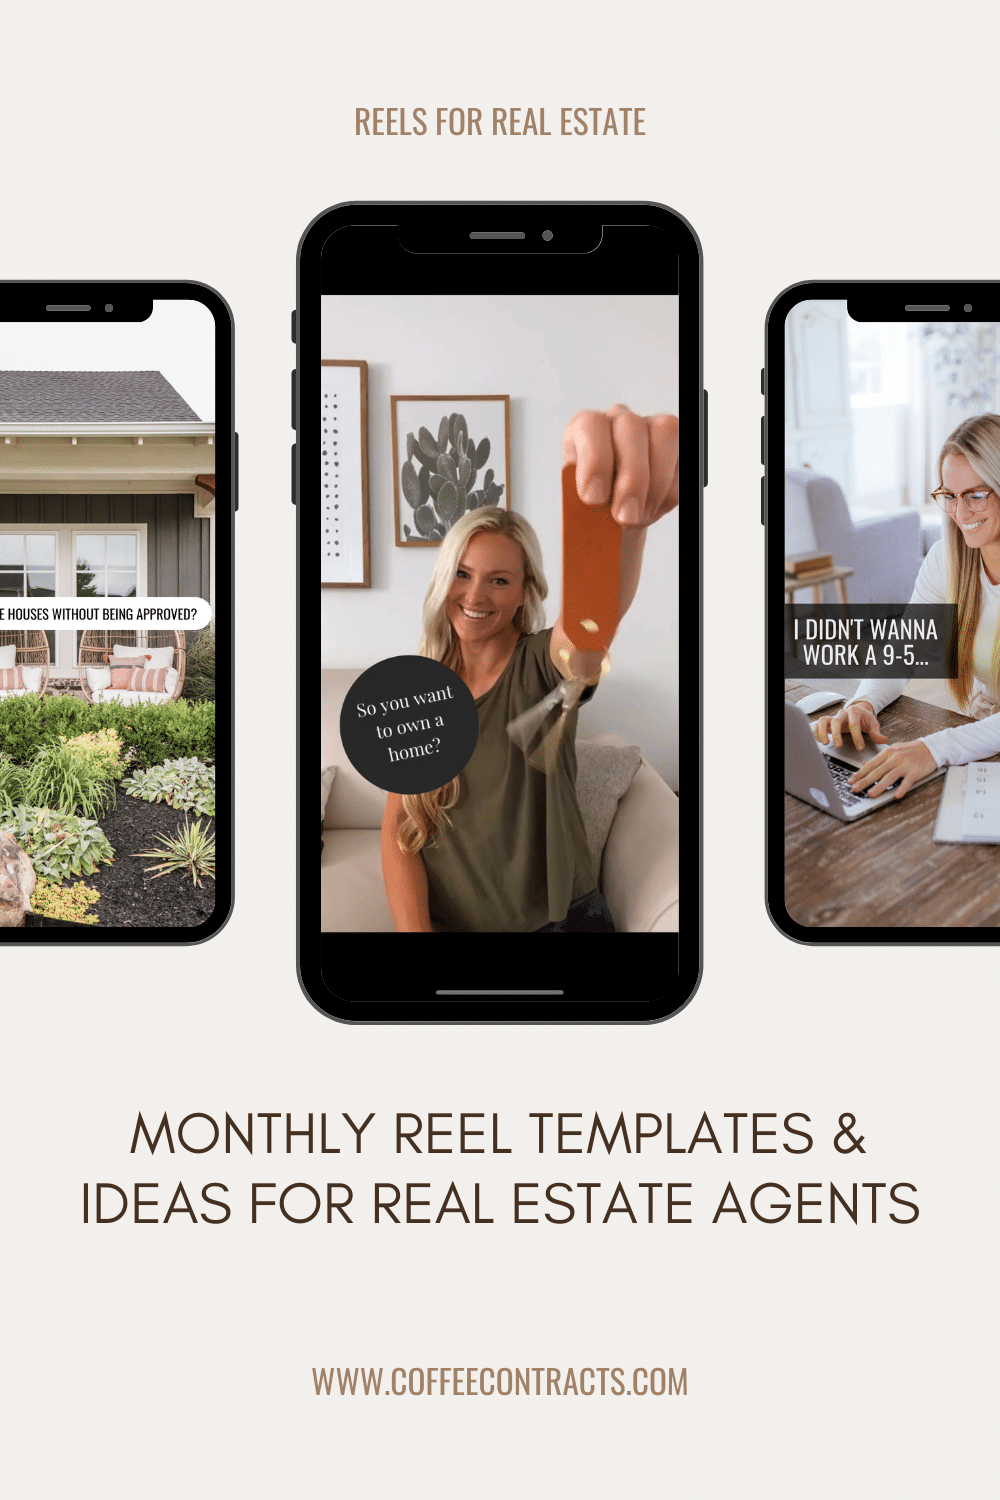 Marketing Templates and Social Media Content for Real Estate Agents